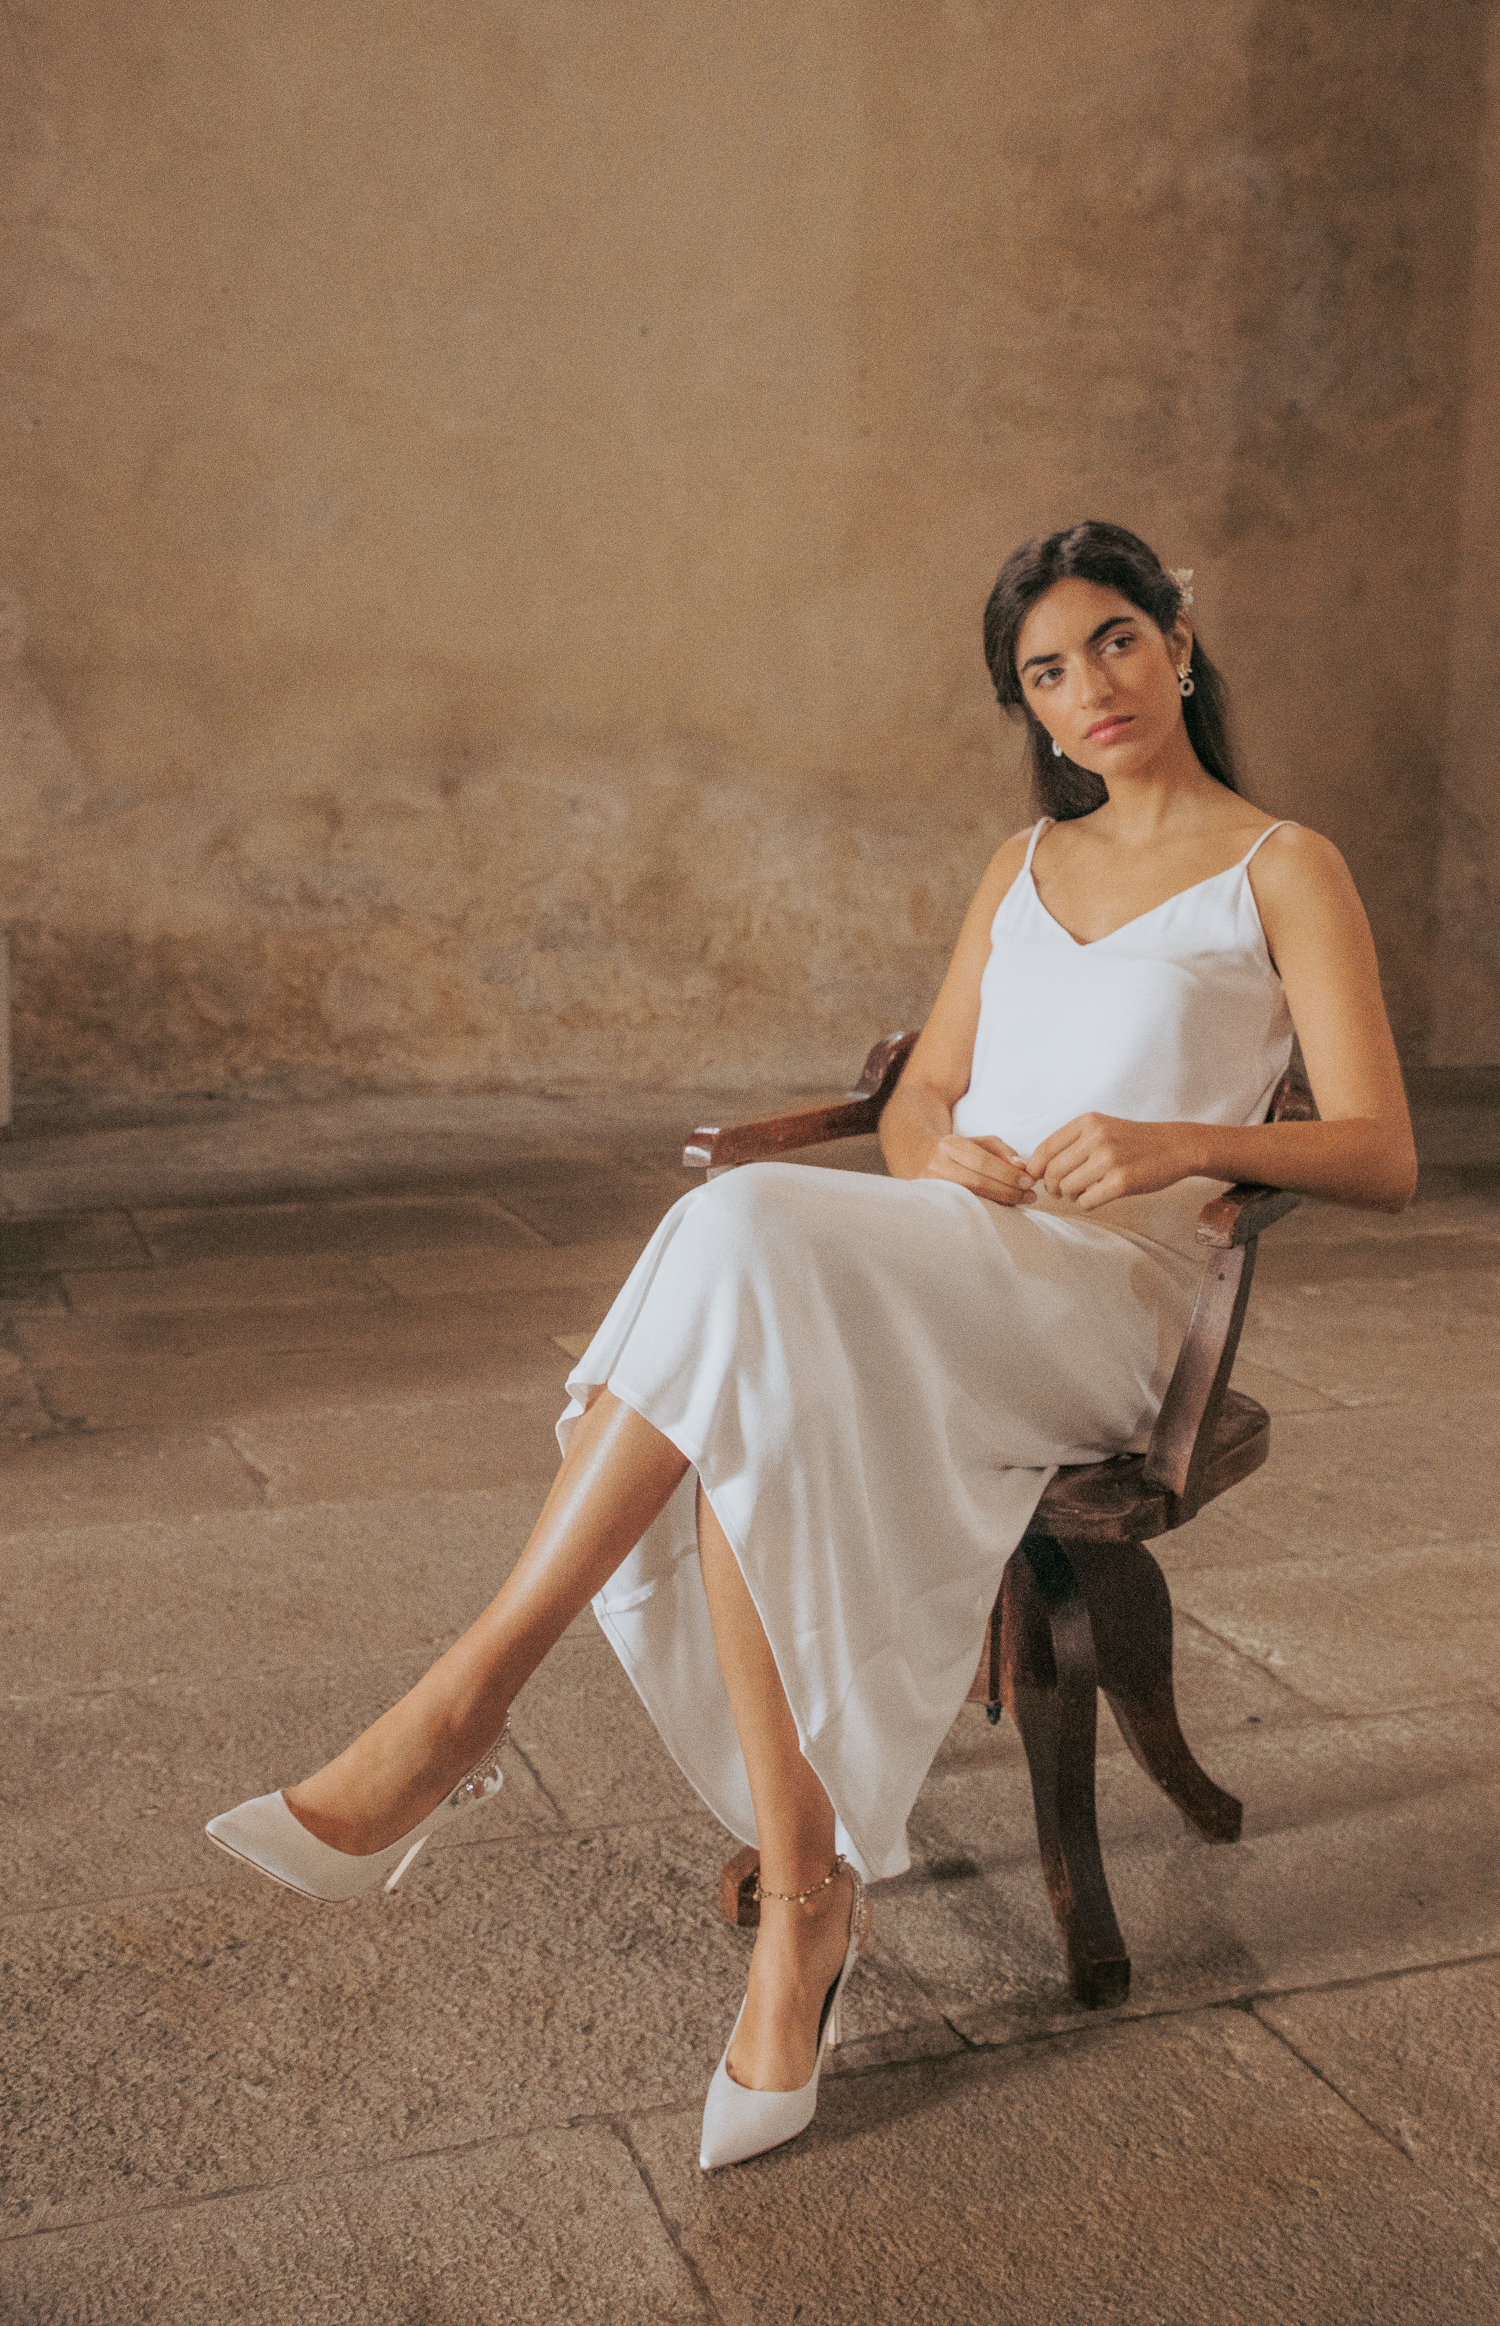 portugal-wedding-photographer-styled-shoot-with-diana-martin-earth-tones-model-as-bride-in-church.jpg